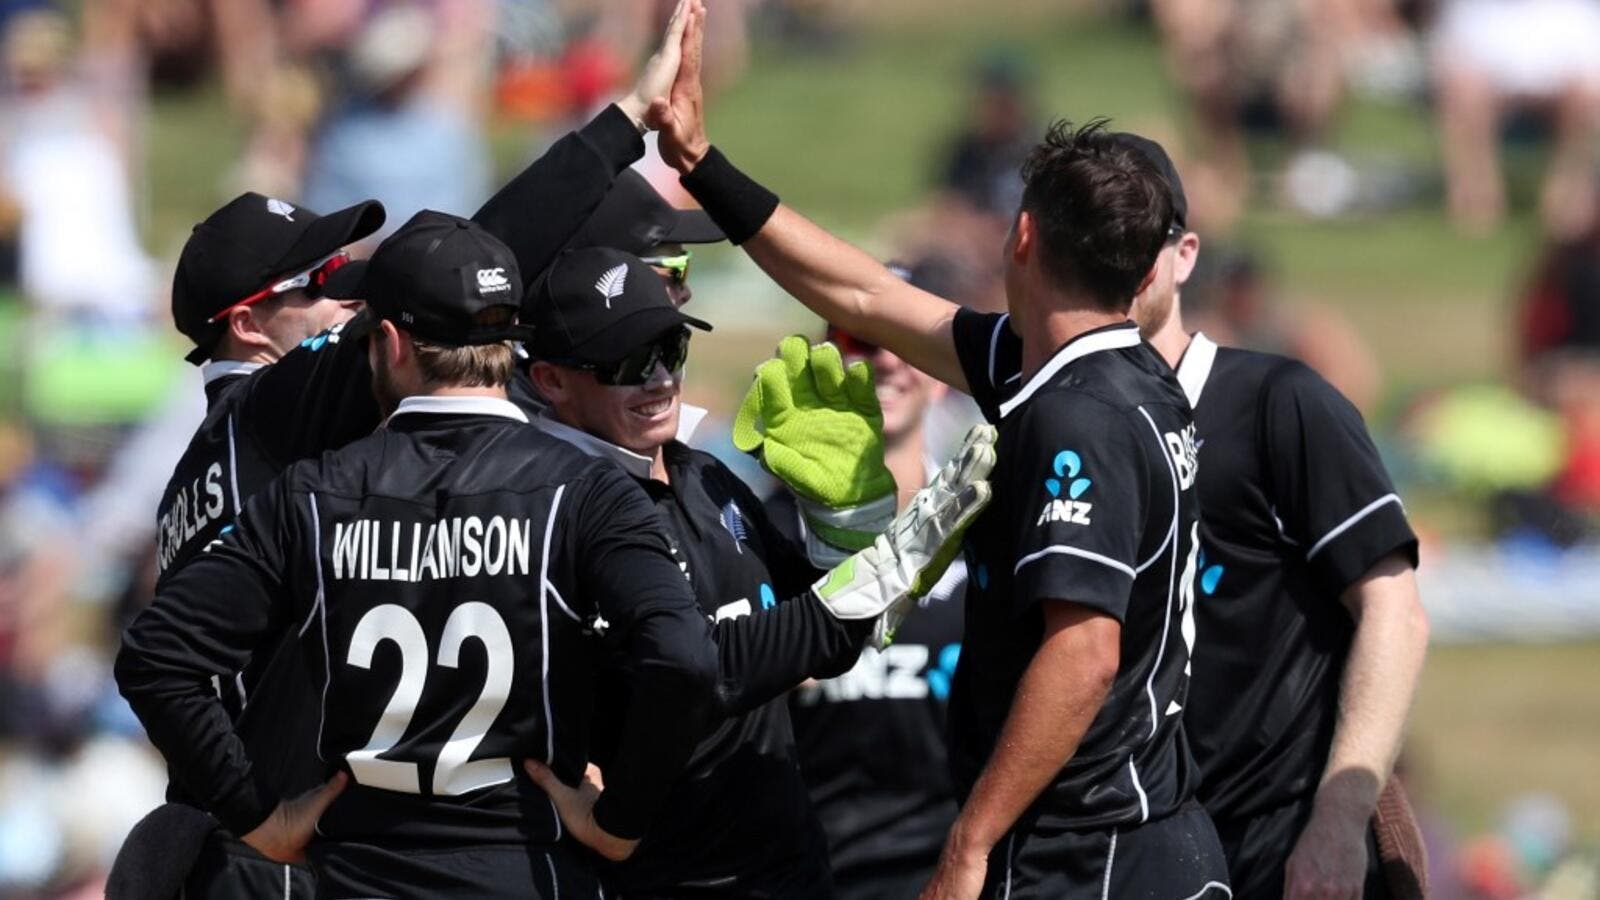 New Zealand is yet to win the World Cup